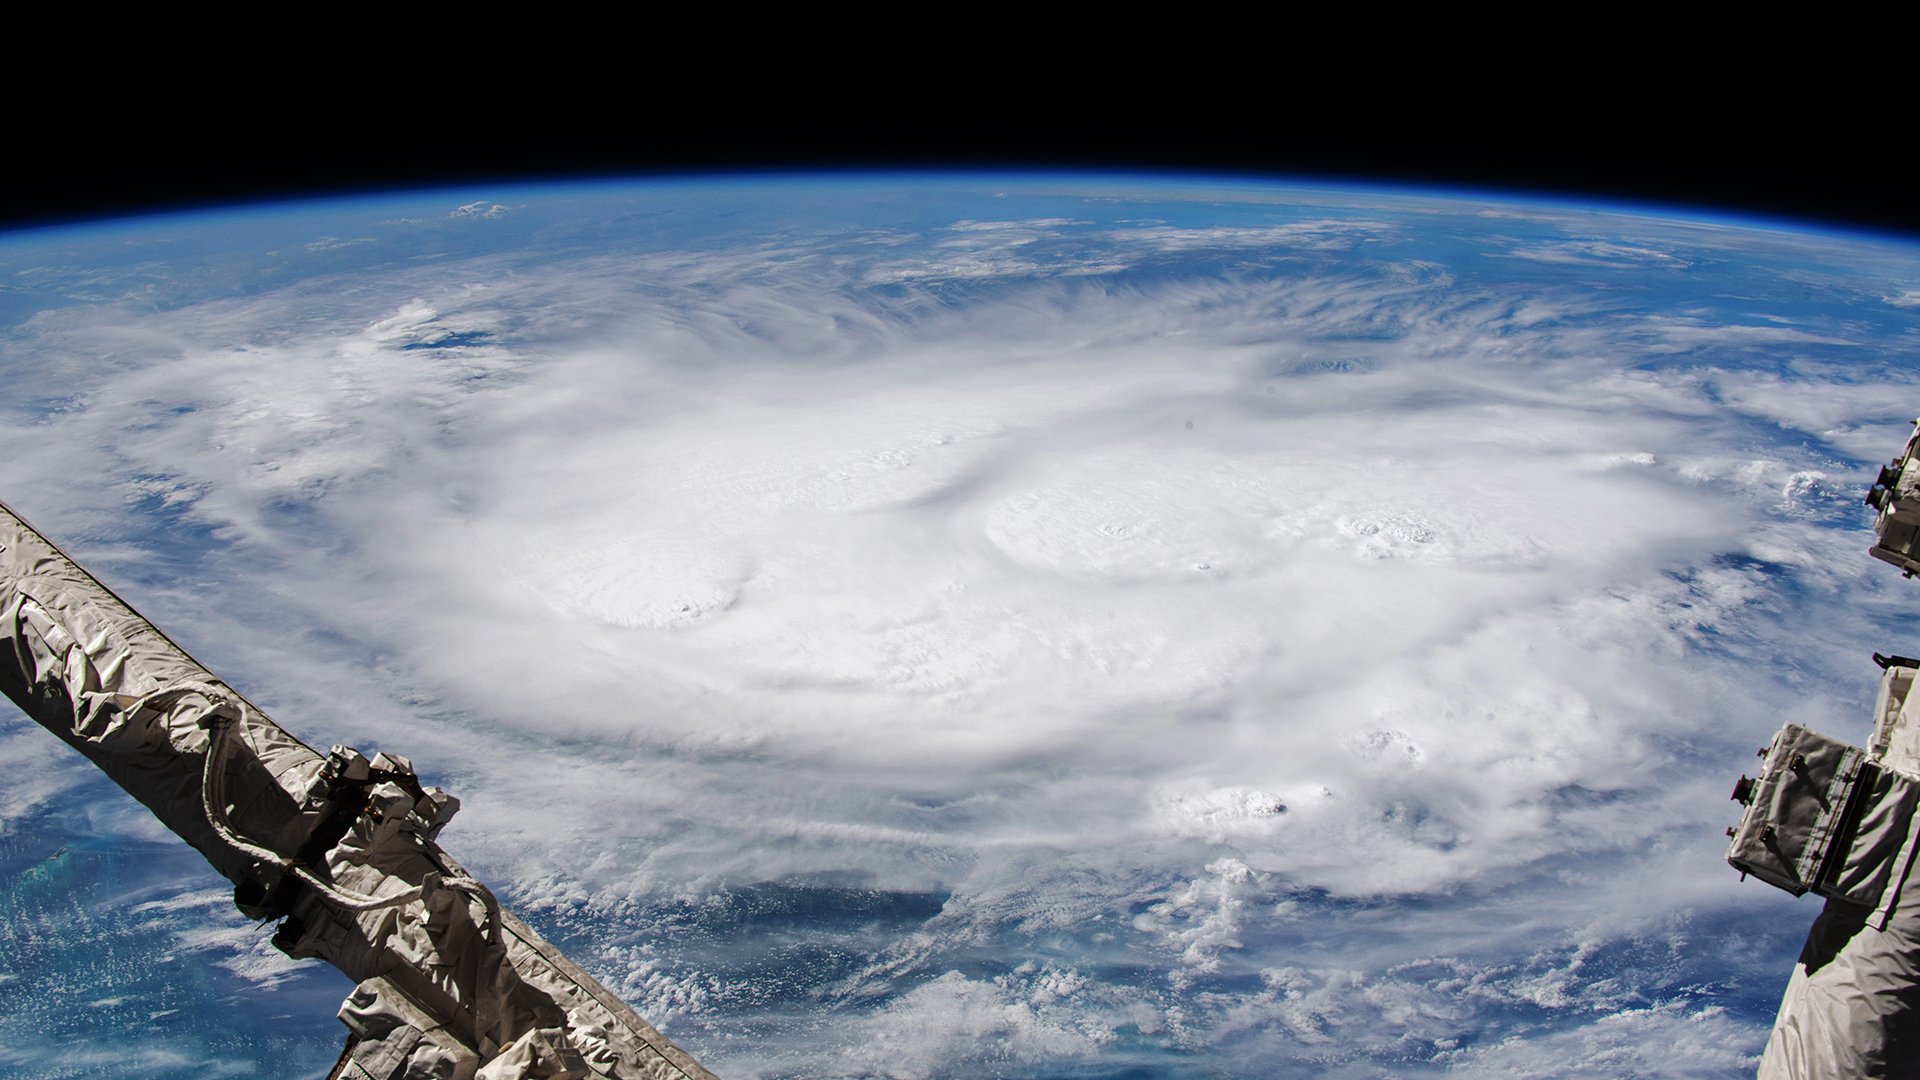 This hurricane season will be even more active than previously predicted, NOAA says thumbnail